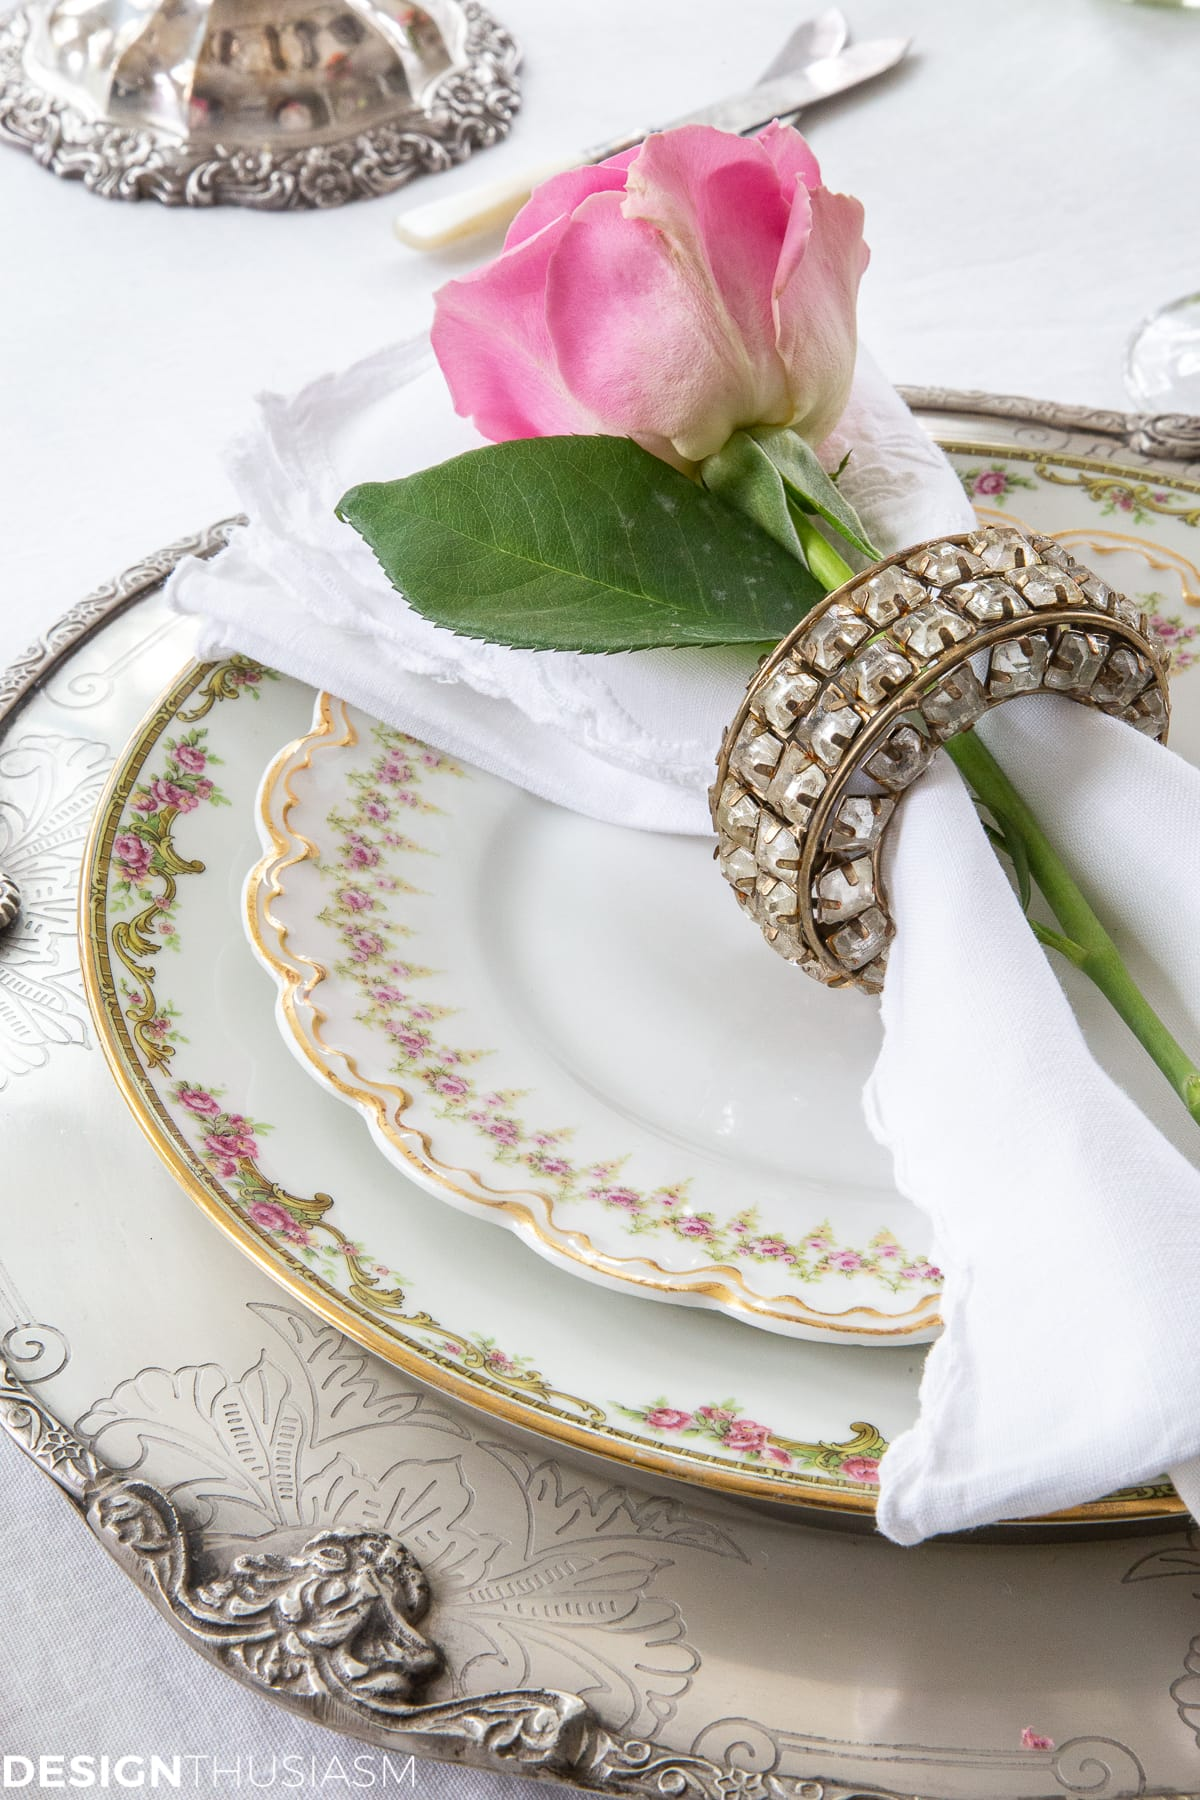 mixed china in a white dining table setting